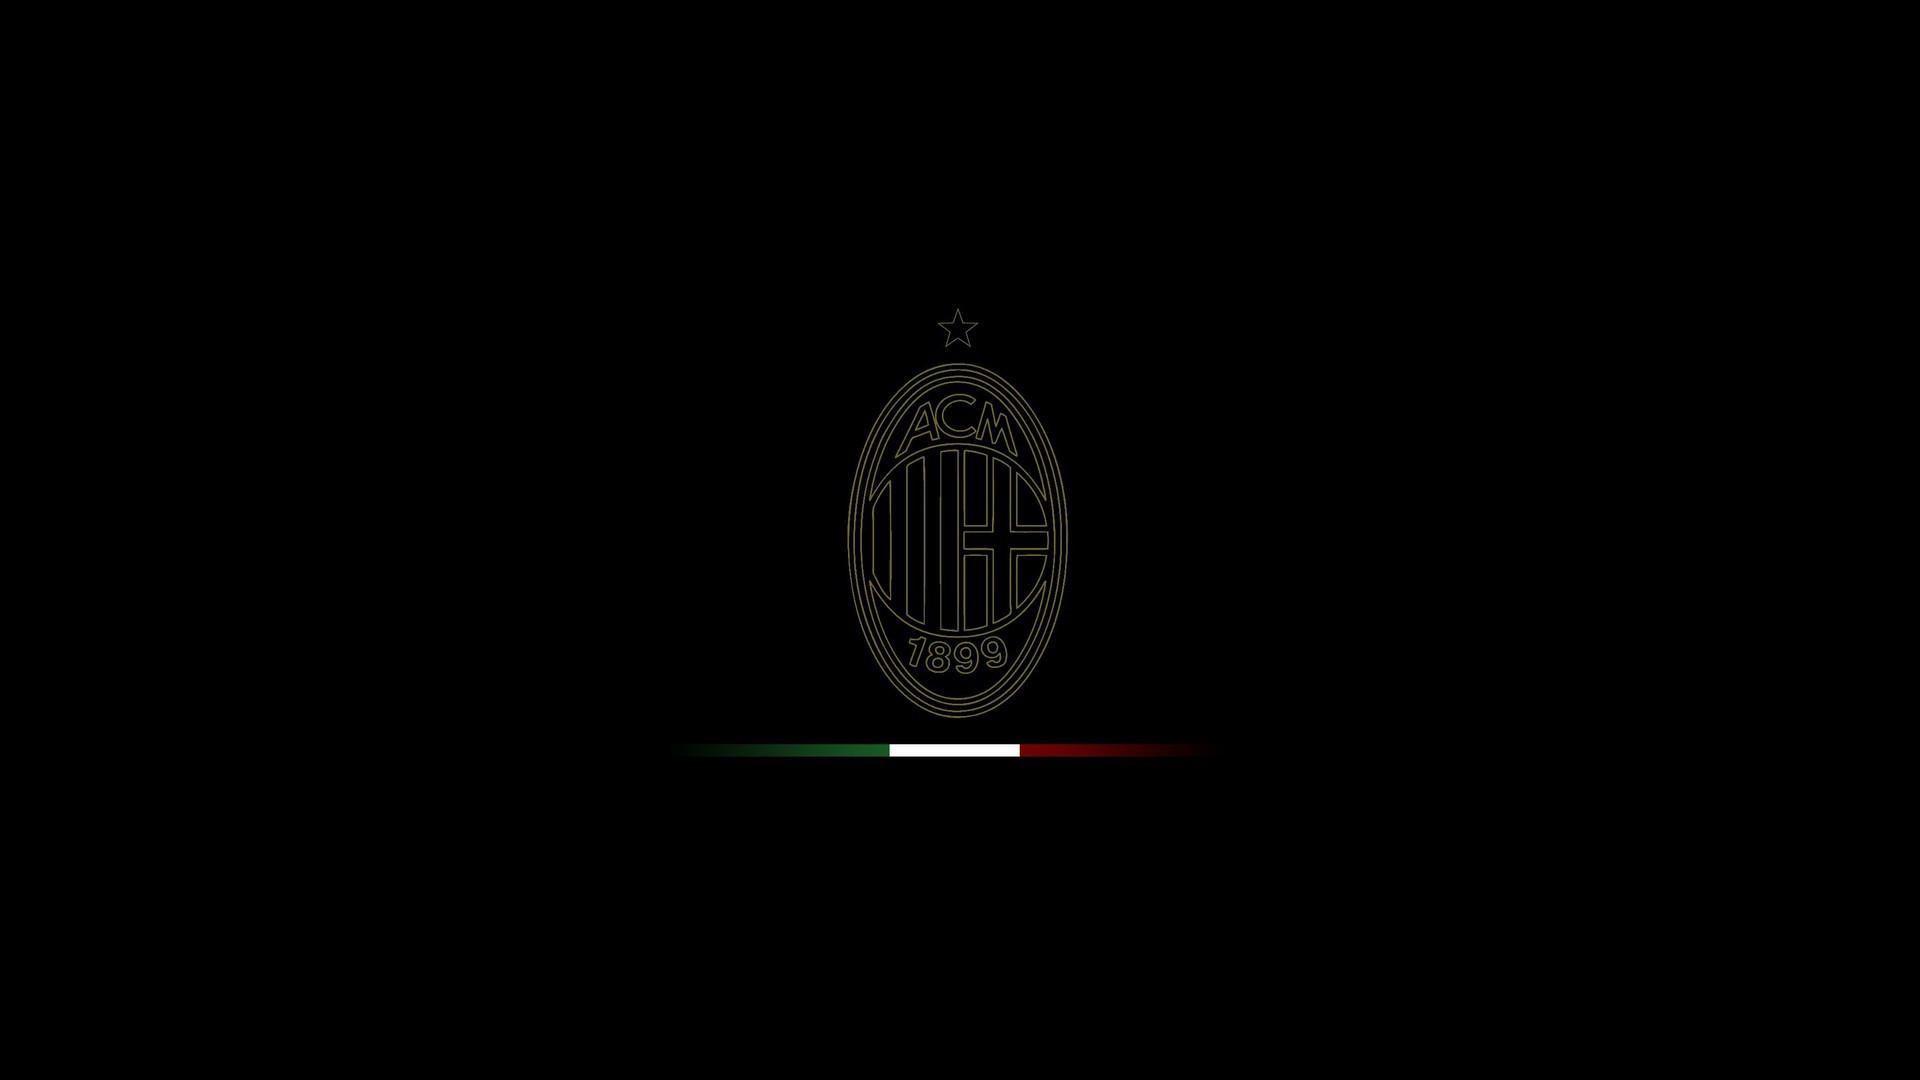 Ac Milan Wallpaper Hd   The Best Football HD Wallpapers: Players, Teams,  Leagues Wallpapers Only on Wpredsfsd.com